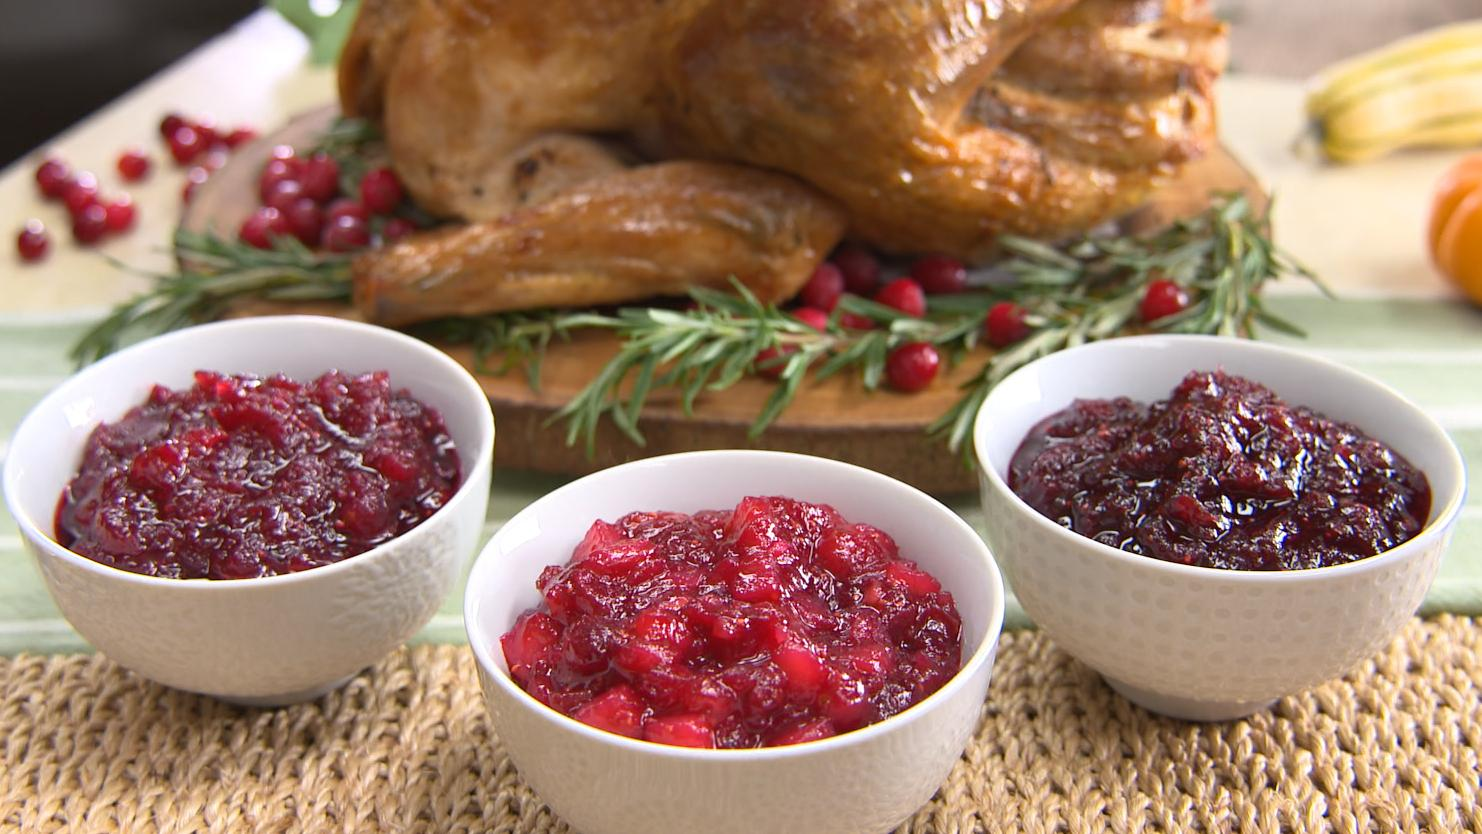 Best Bites: Traditional Thanksgiving cranberry sauce 3 ways